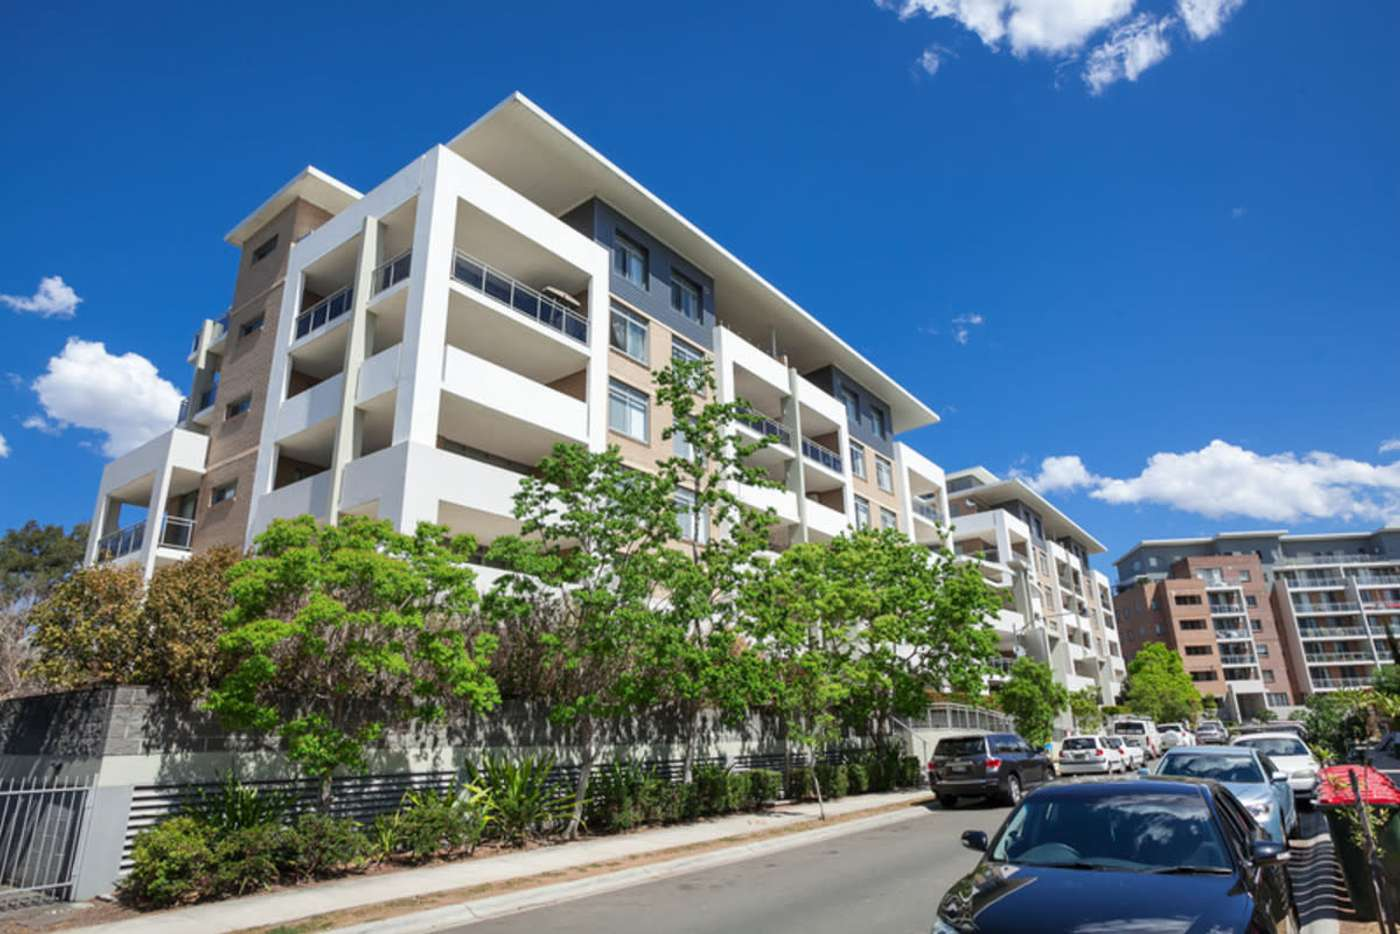 Main view of Homely apartment listing, 45/28 Brickworks Drive, Holroyd NSW 2142